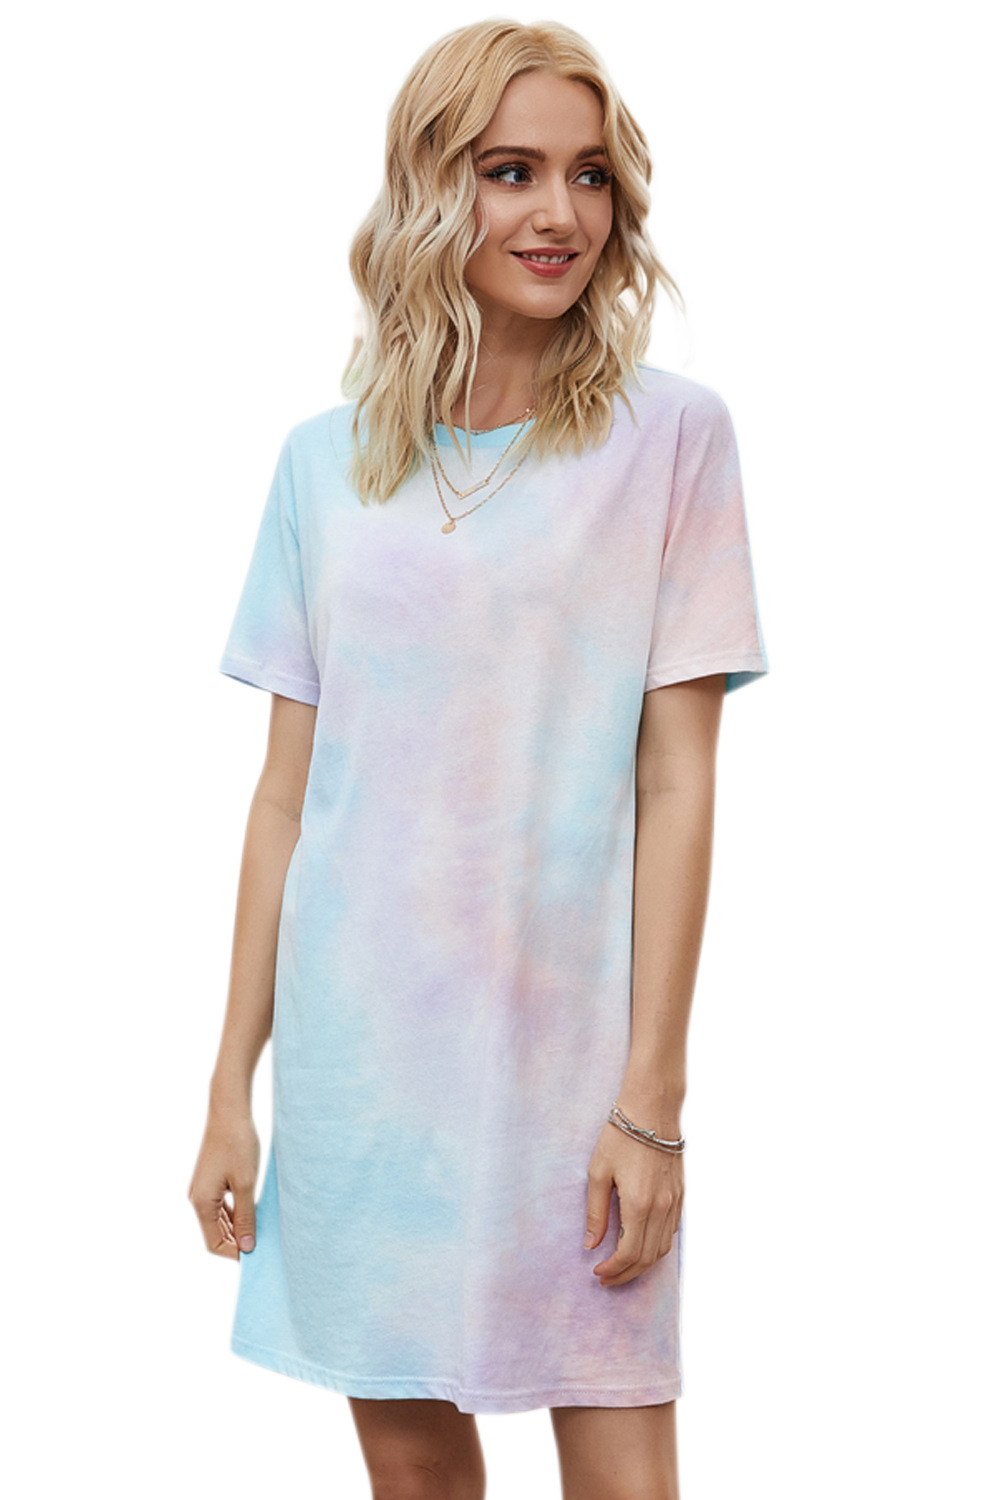 spring and summer new women's hot sale round neck short sleeve gradient dress  NSDF1295